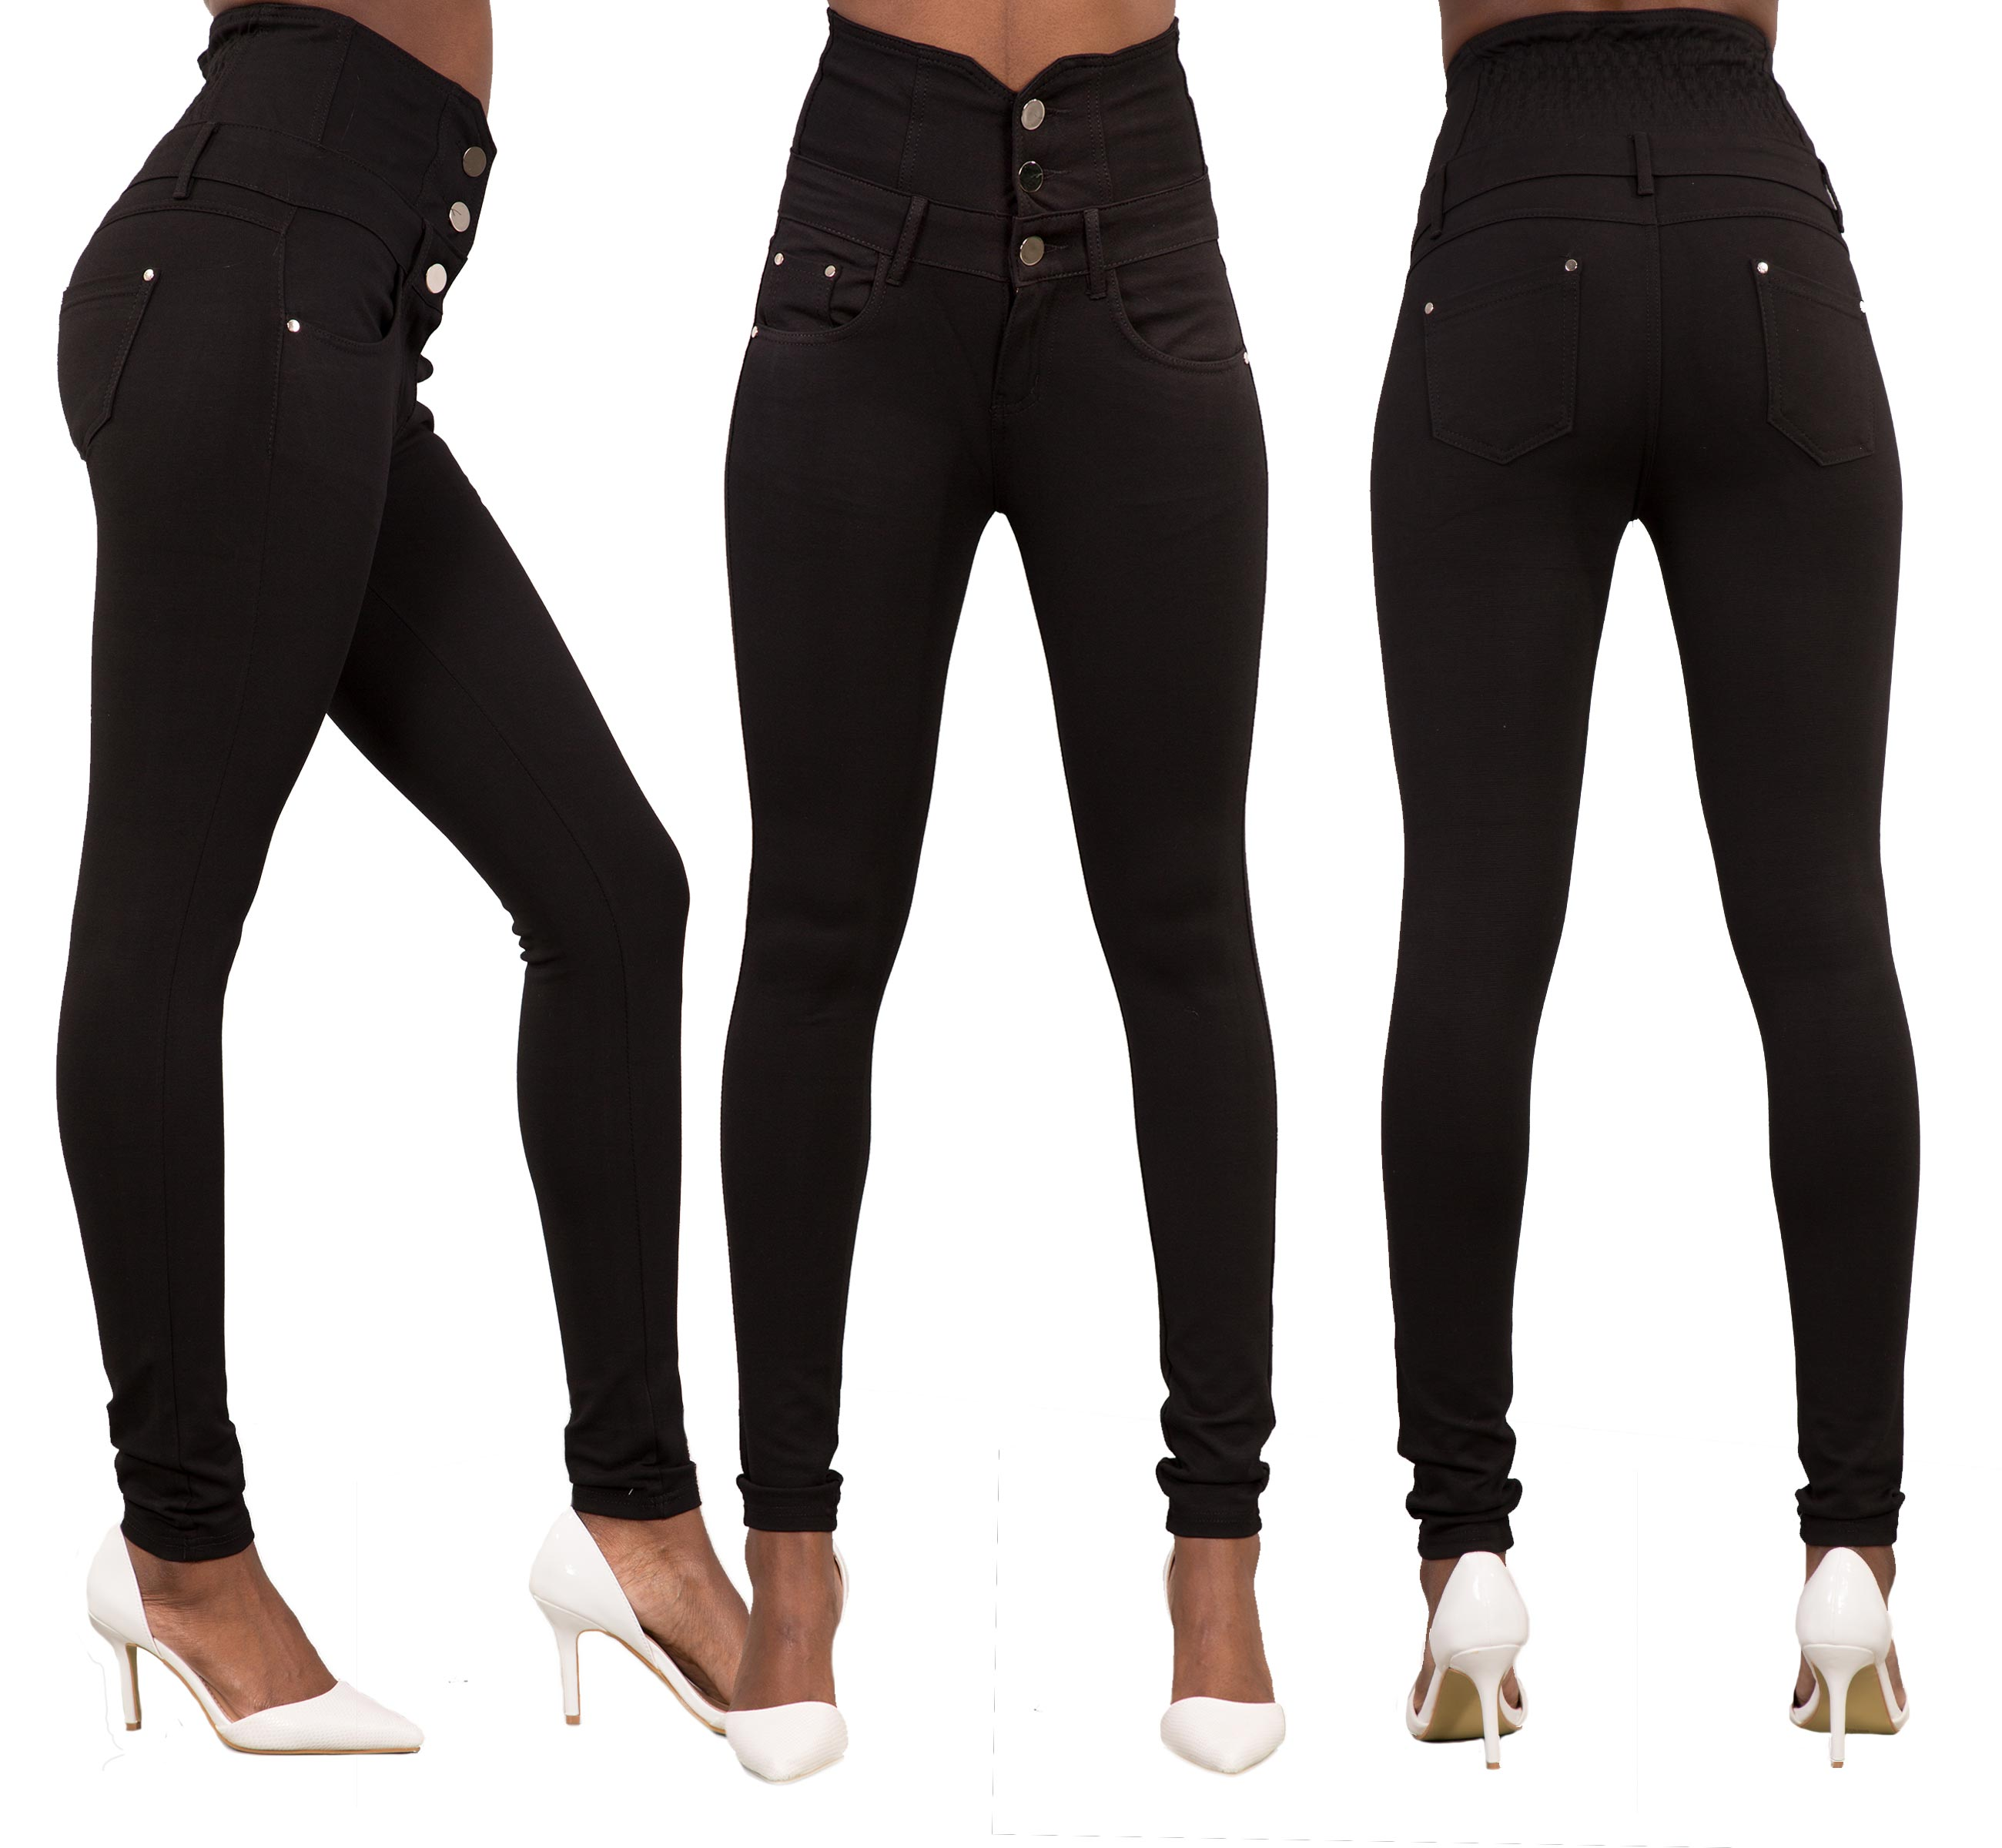 New Women 5 Colour High Waist Pants Skinny Fit Jeans Stretchy Trousers Size 6-14